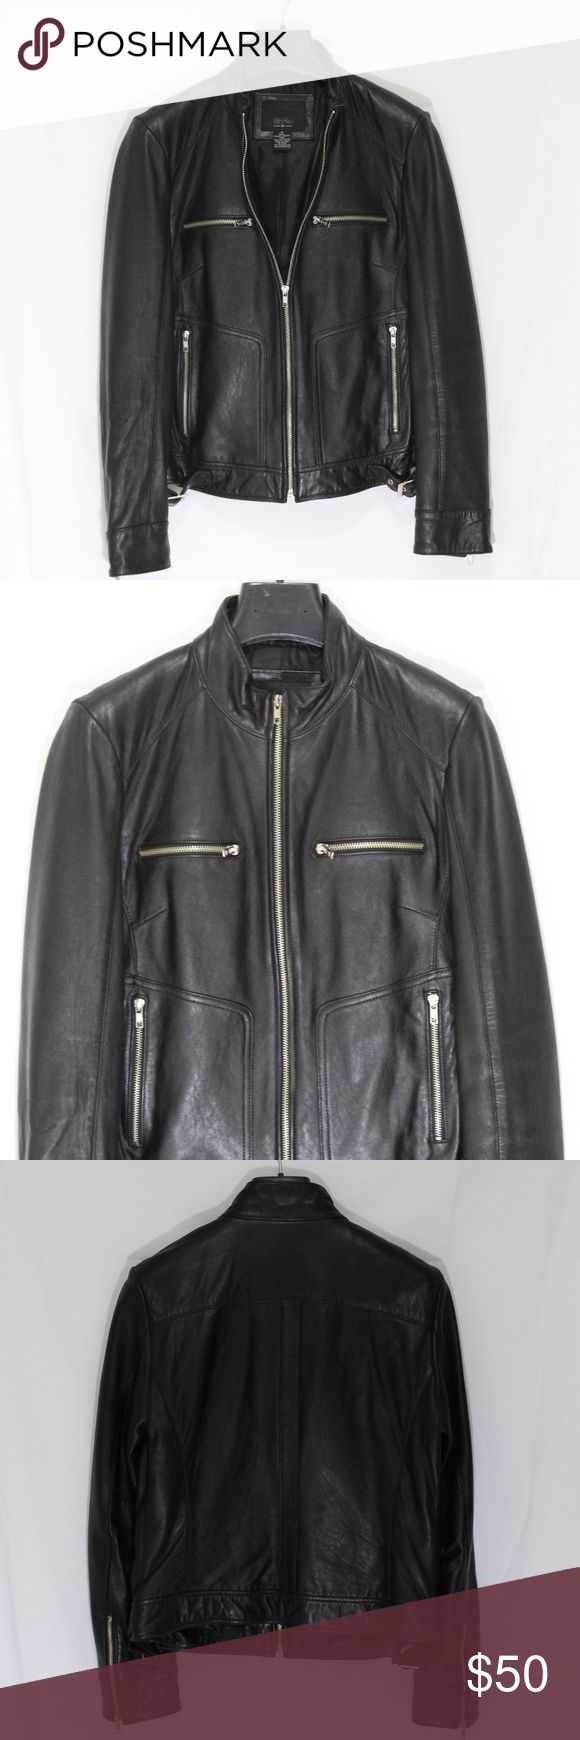 Mossimo Genuine Leather Motorcycle Jacket  size M Genuine Leather Motorcycle style Jacket Color: Black Size: M Condition: Pre-Owned with no signs of wear Mossimo Supply Co. Jackets & Coats